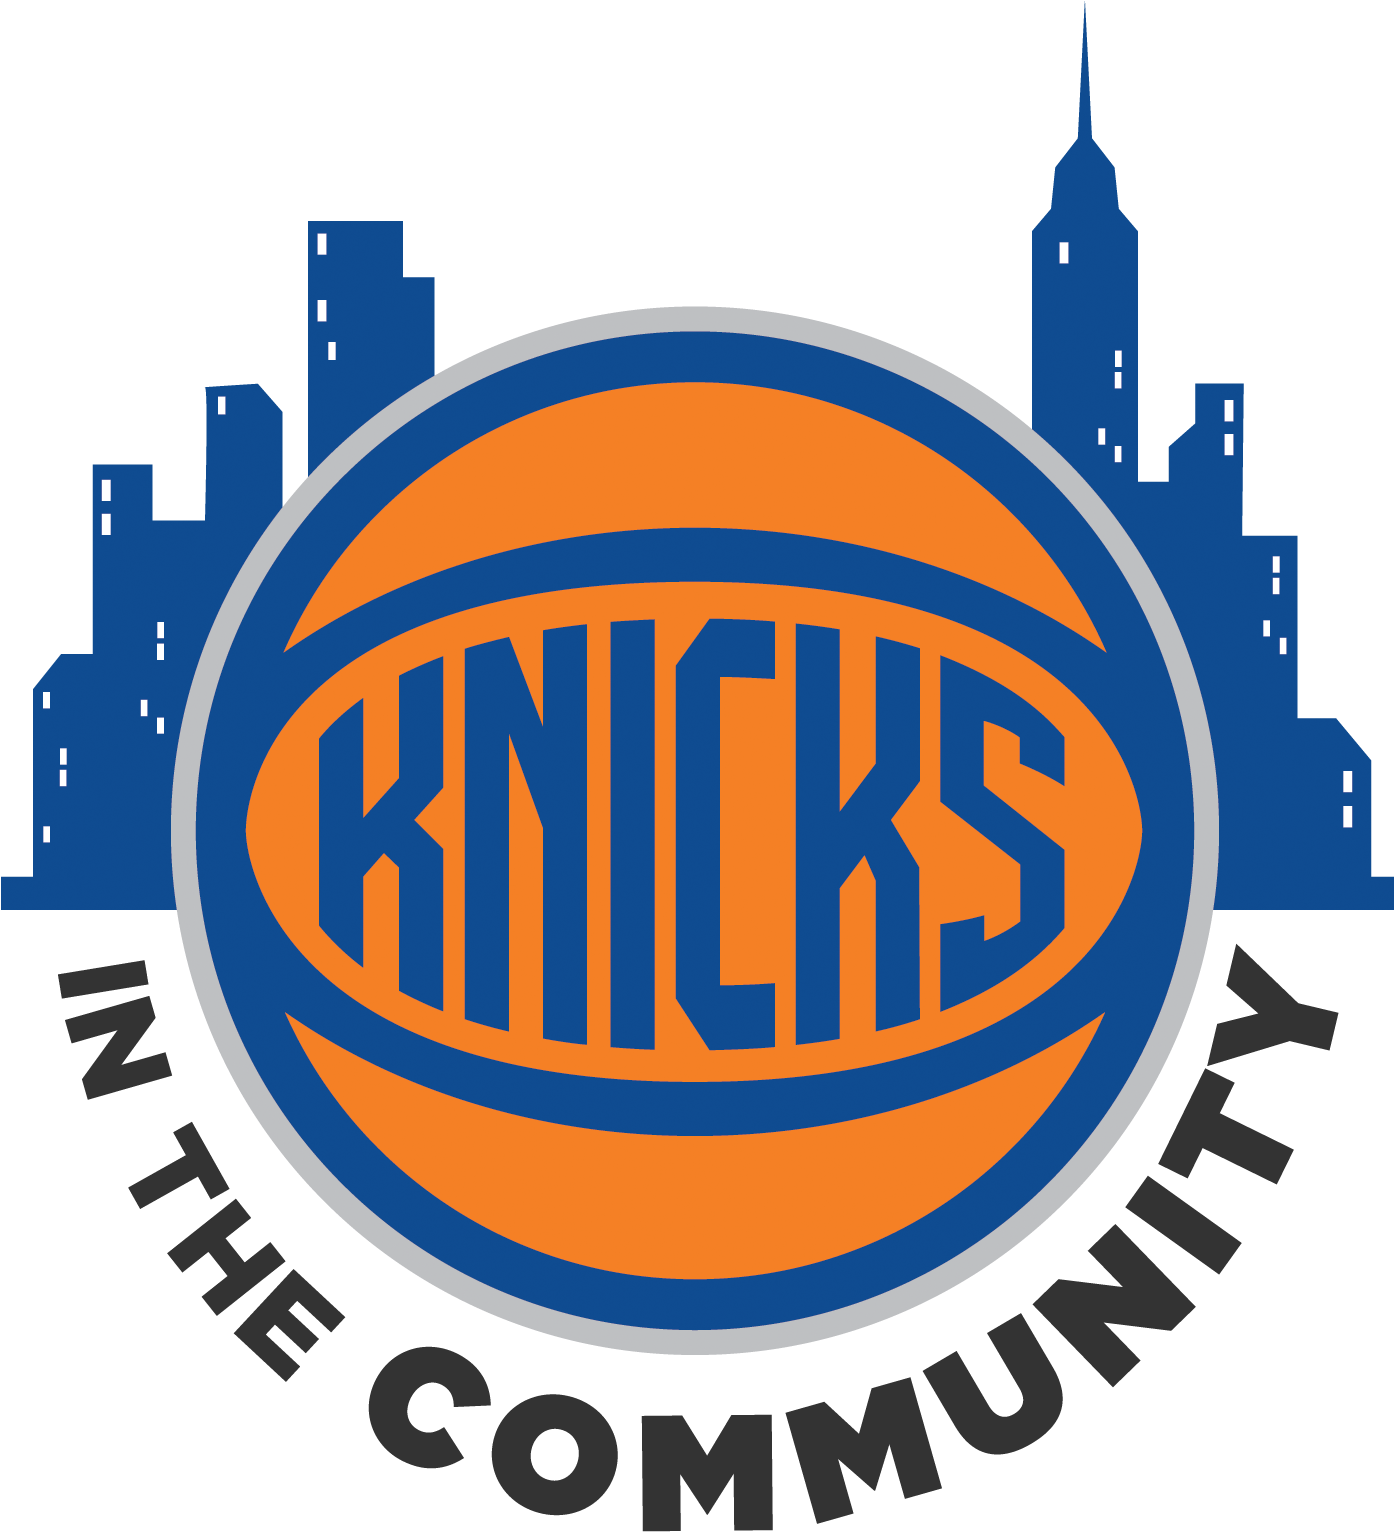 New York Knicks And Garden Of Dreams Thanksgiving Dinner - New York Knicks 2017 Logo (1393x1570), Png Download